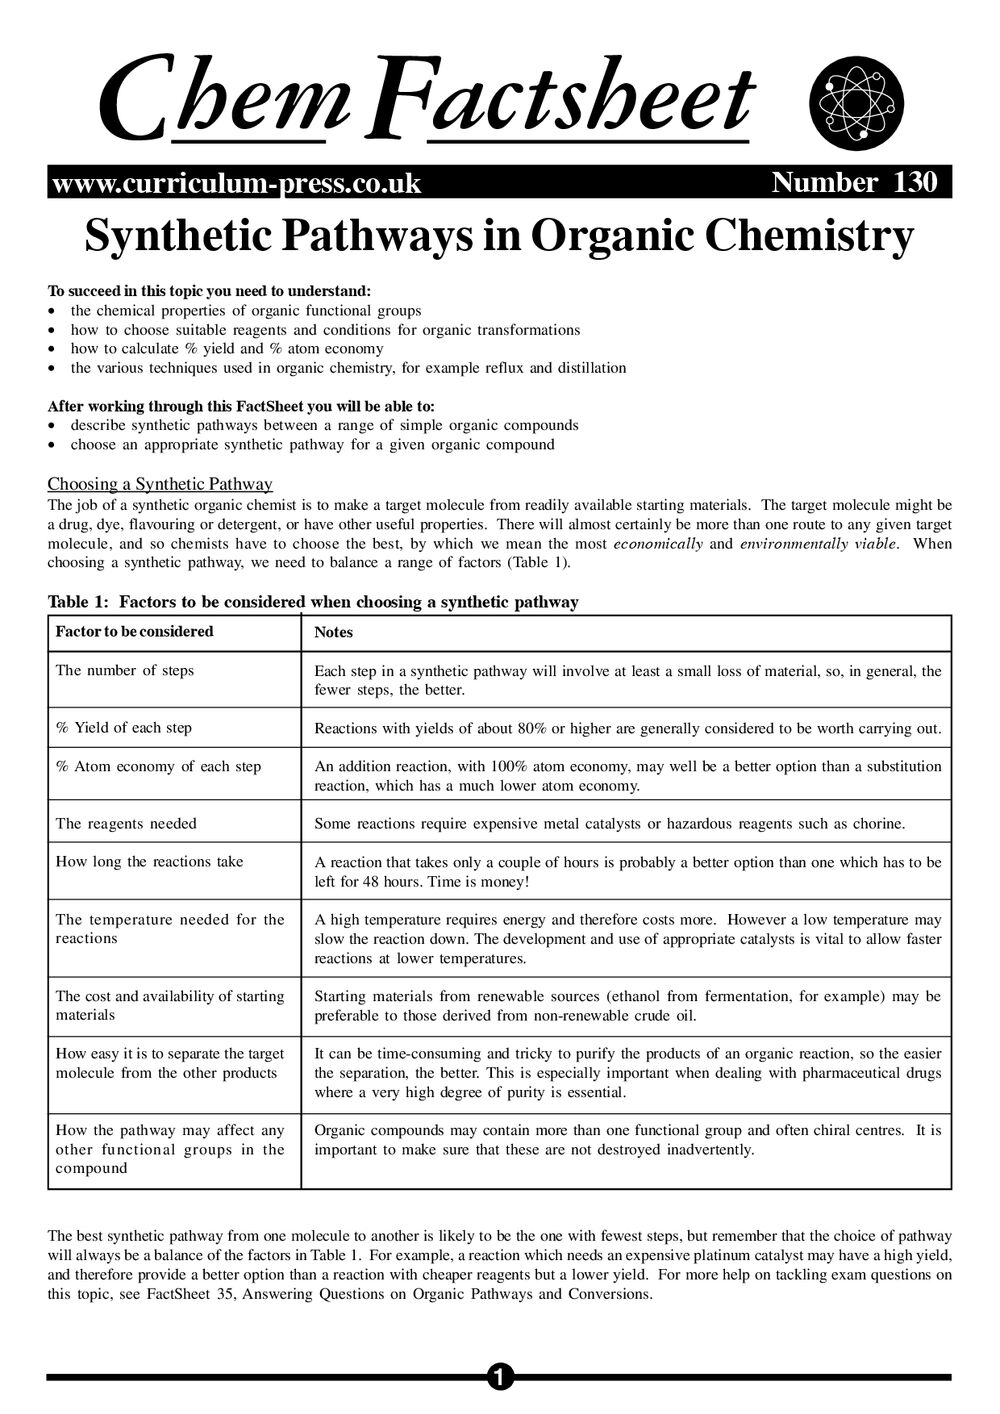 Synthetic Pathways in Organic Chemistry - Curriculum Press